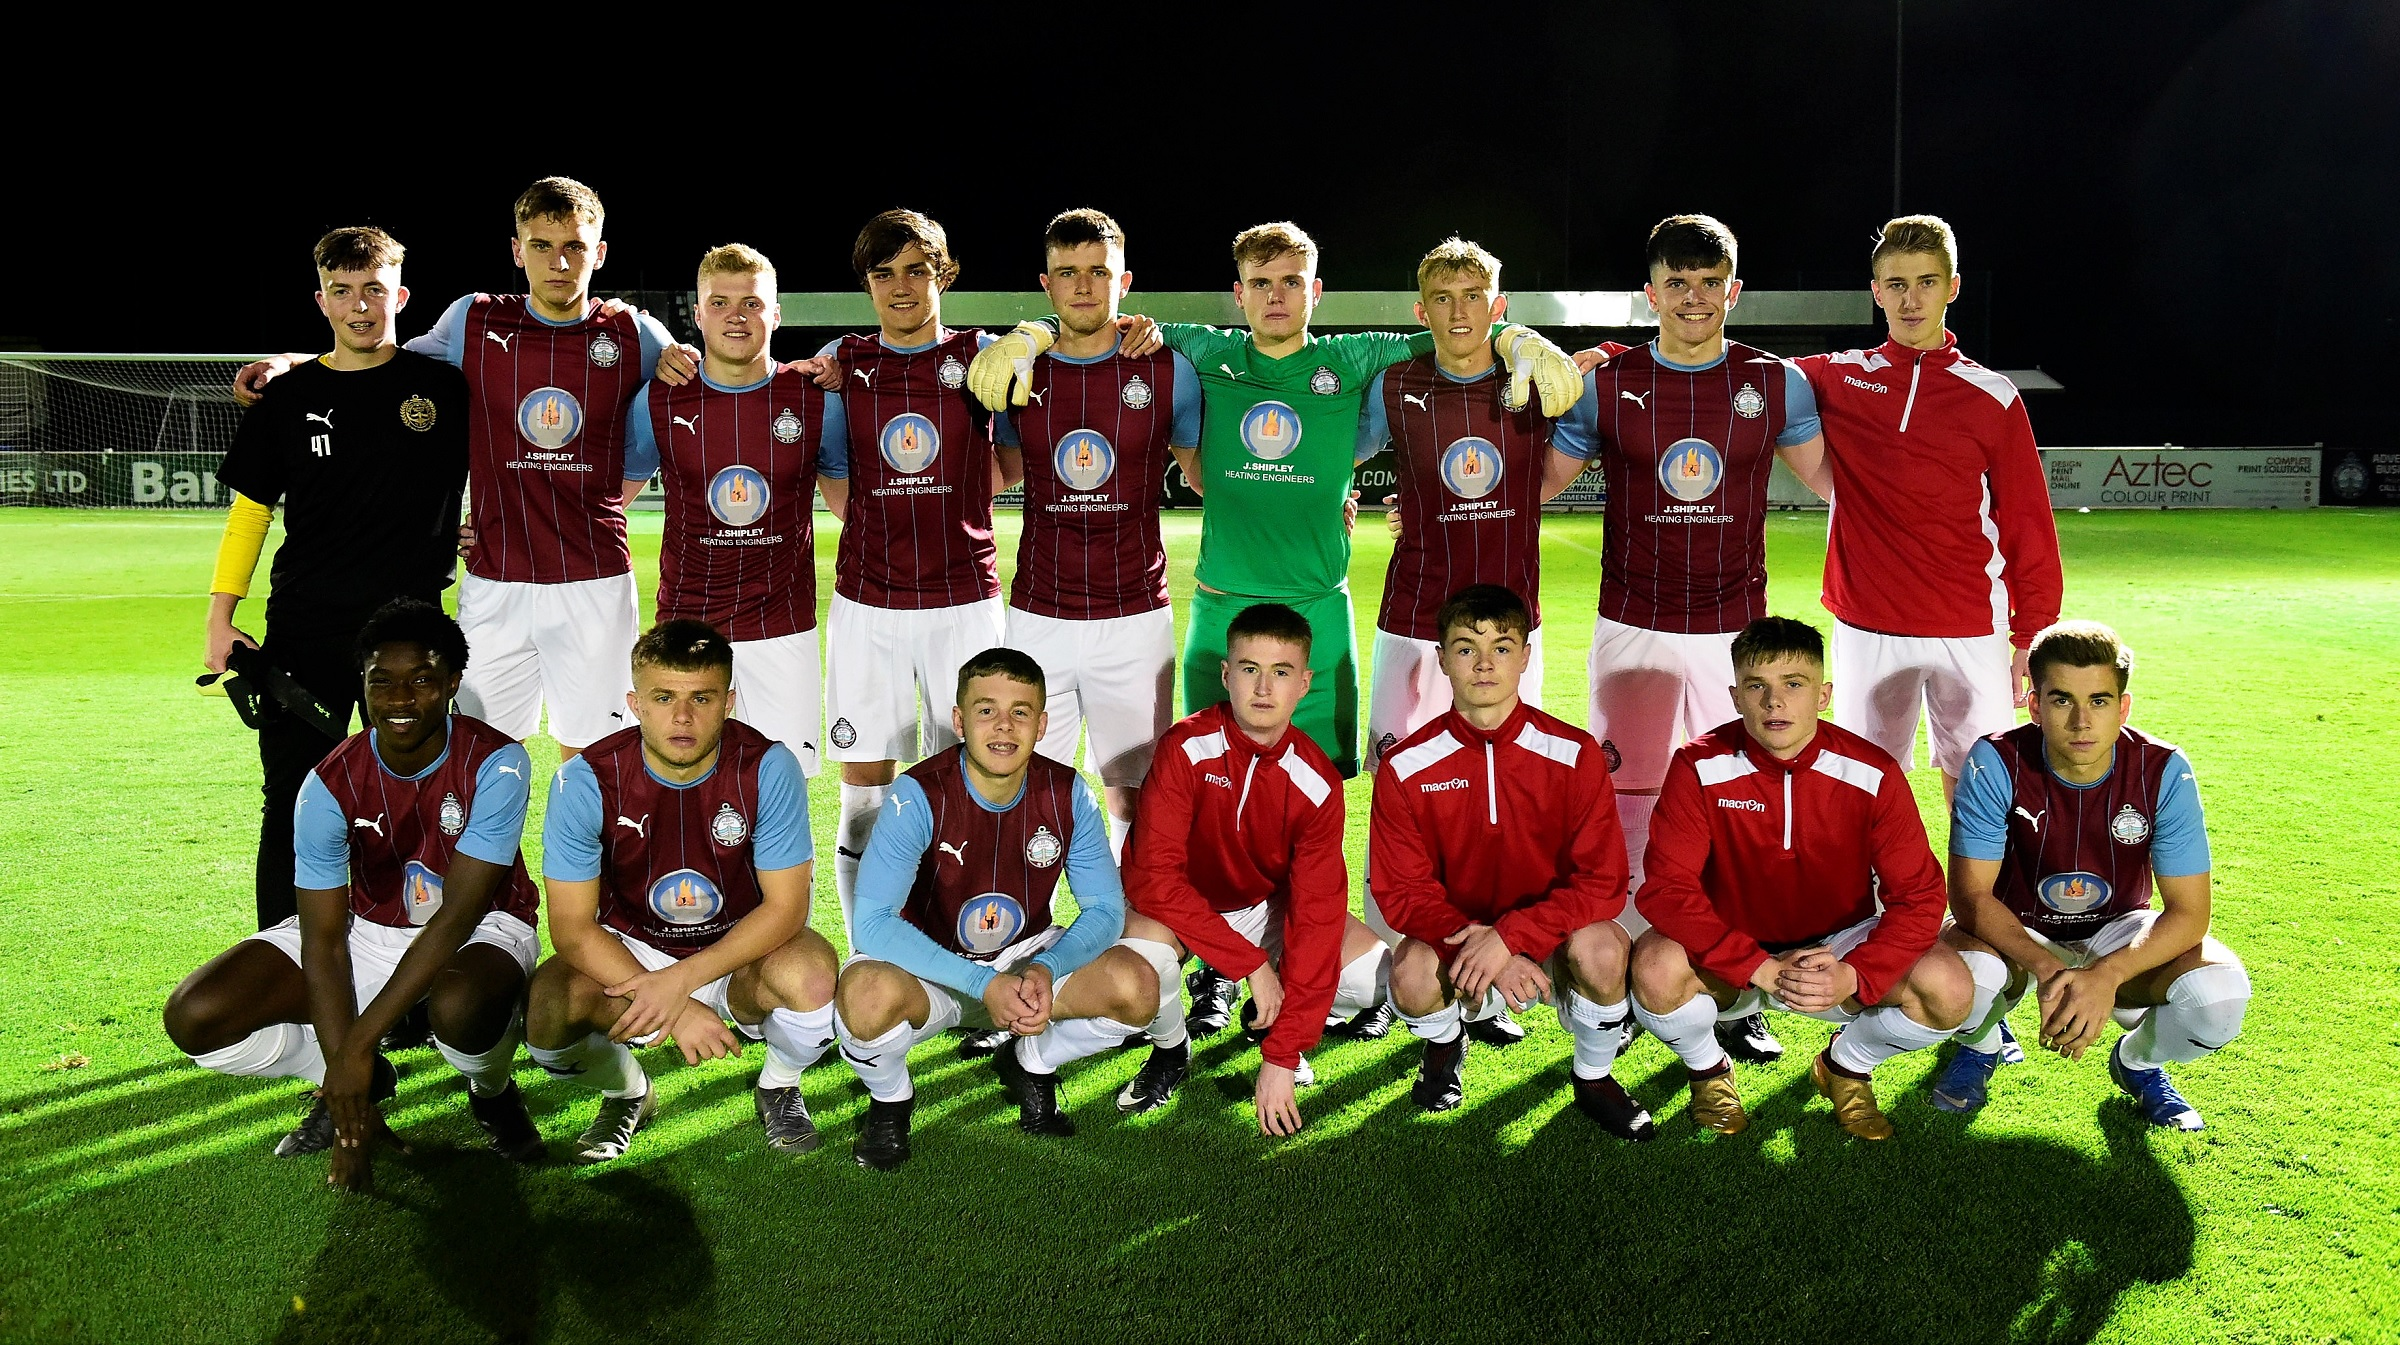 Date confirmed for FA Youth Cup first round tie